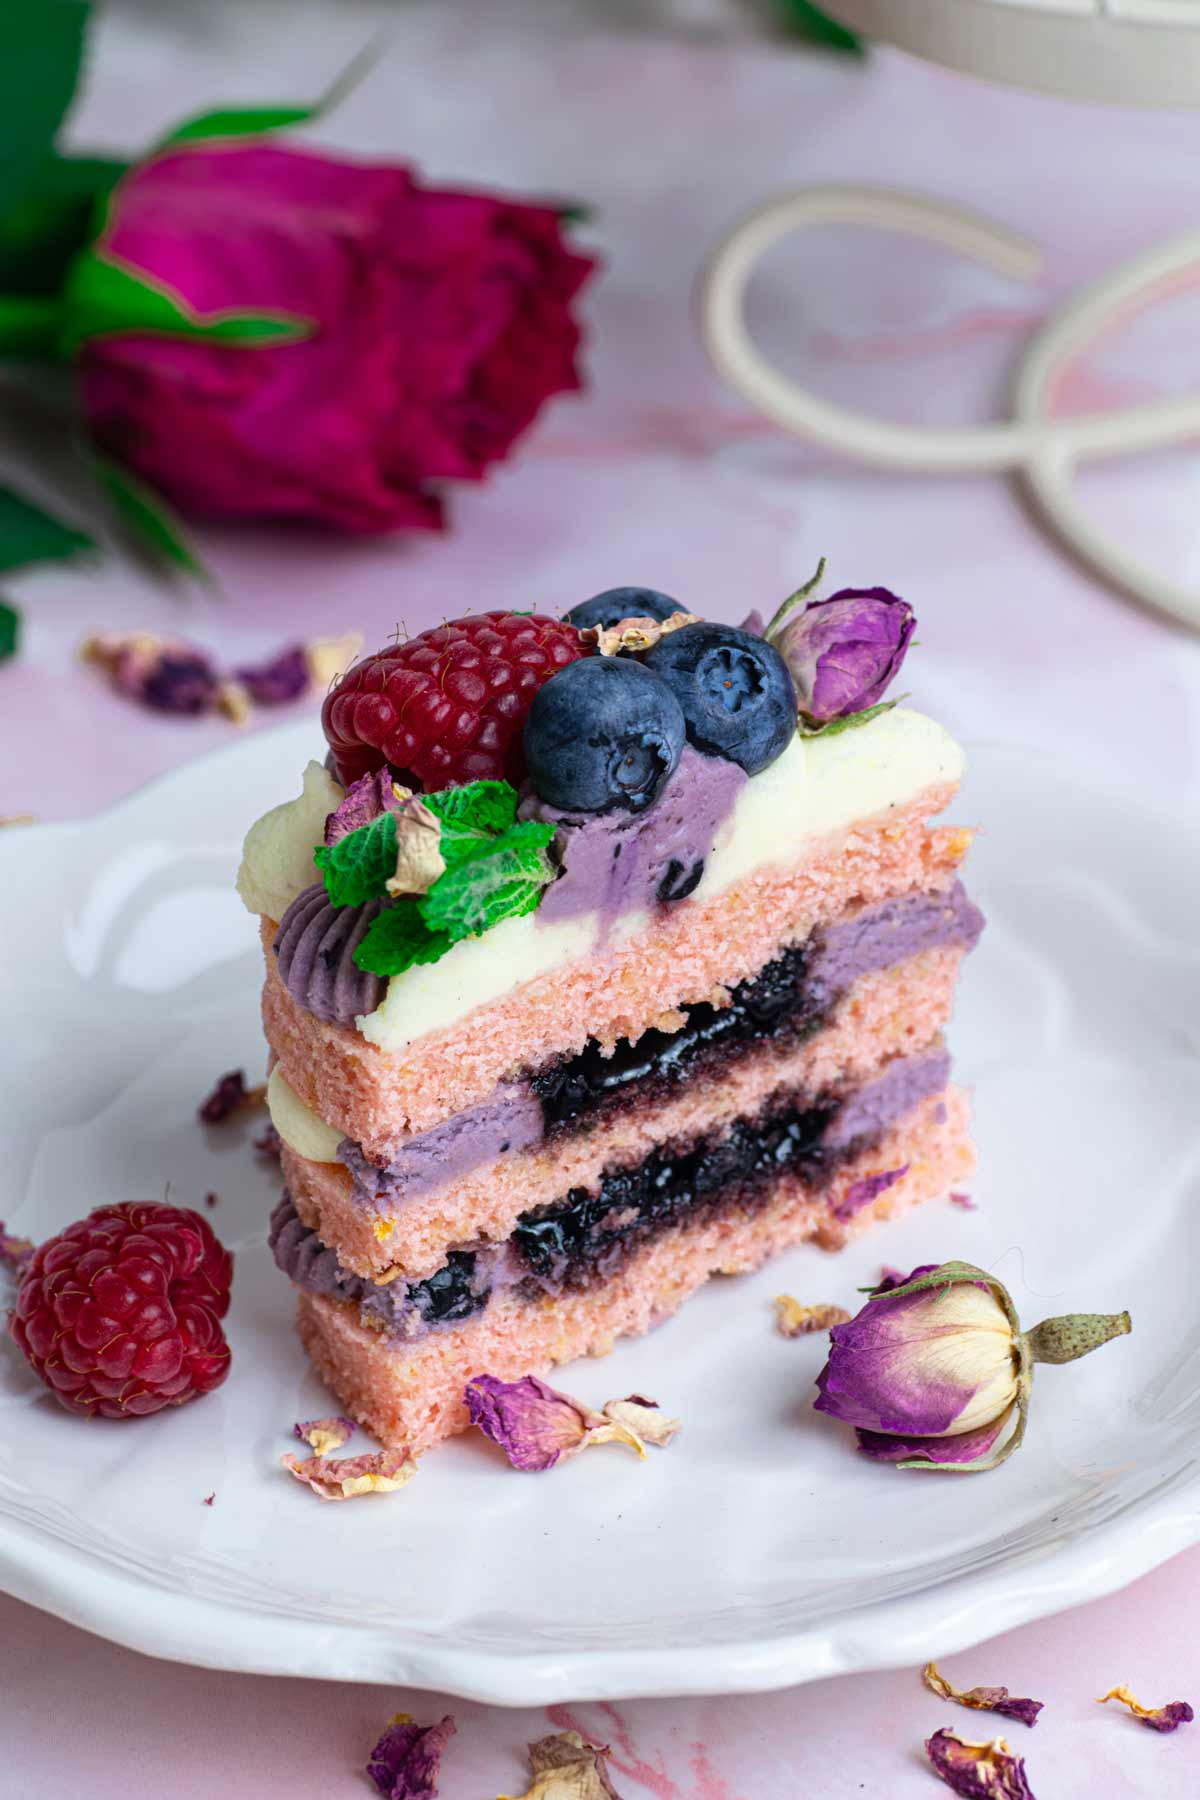 Section of mini cake showing interior with cream cheese frosting and blueberry jam